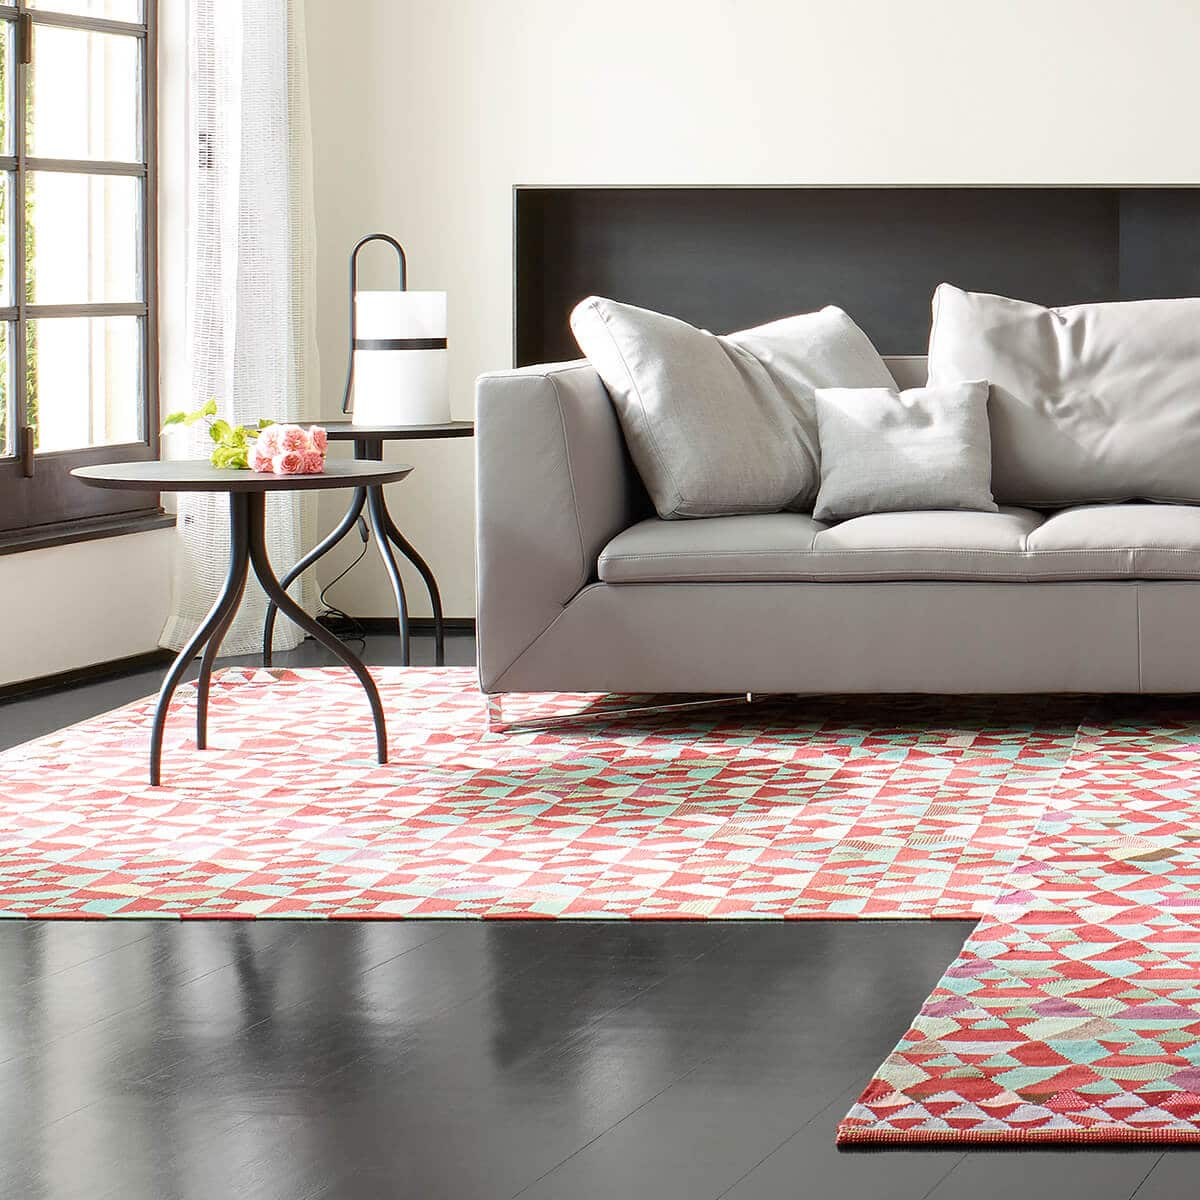 tapis hex hex ligne roset pas cher grandes marques en. Black Bedroom Furniture Sets. Home Design Ideas